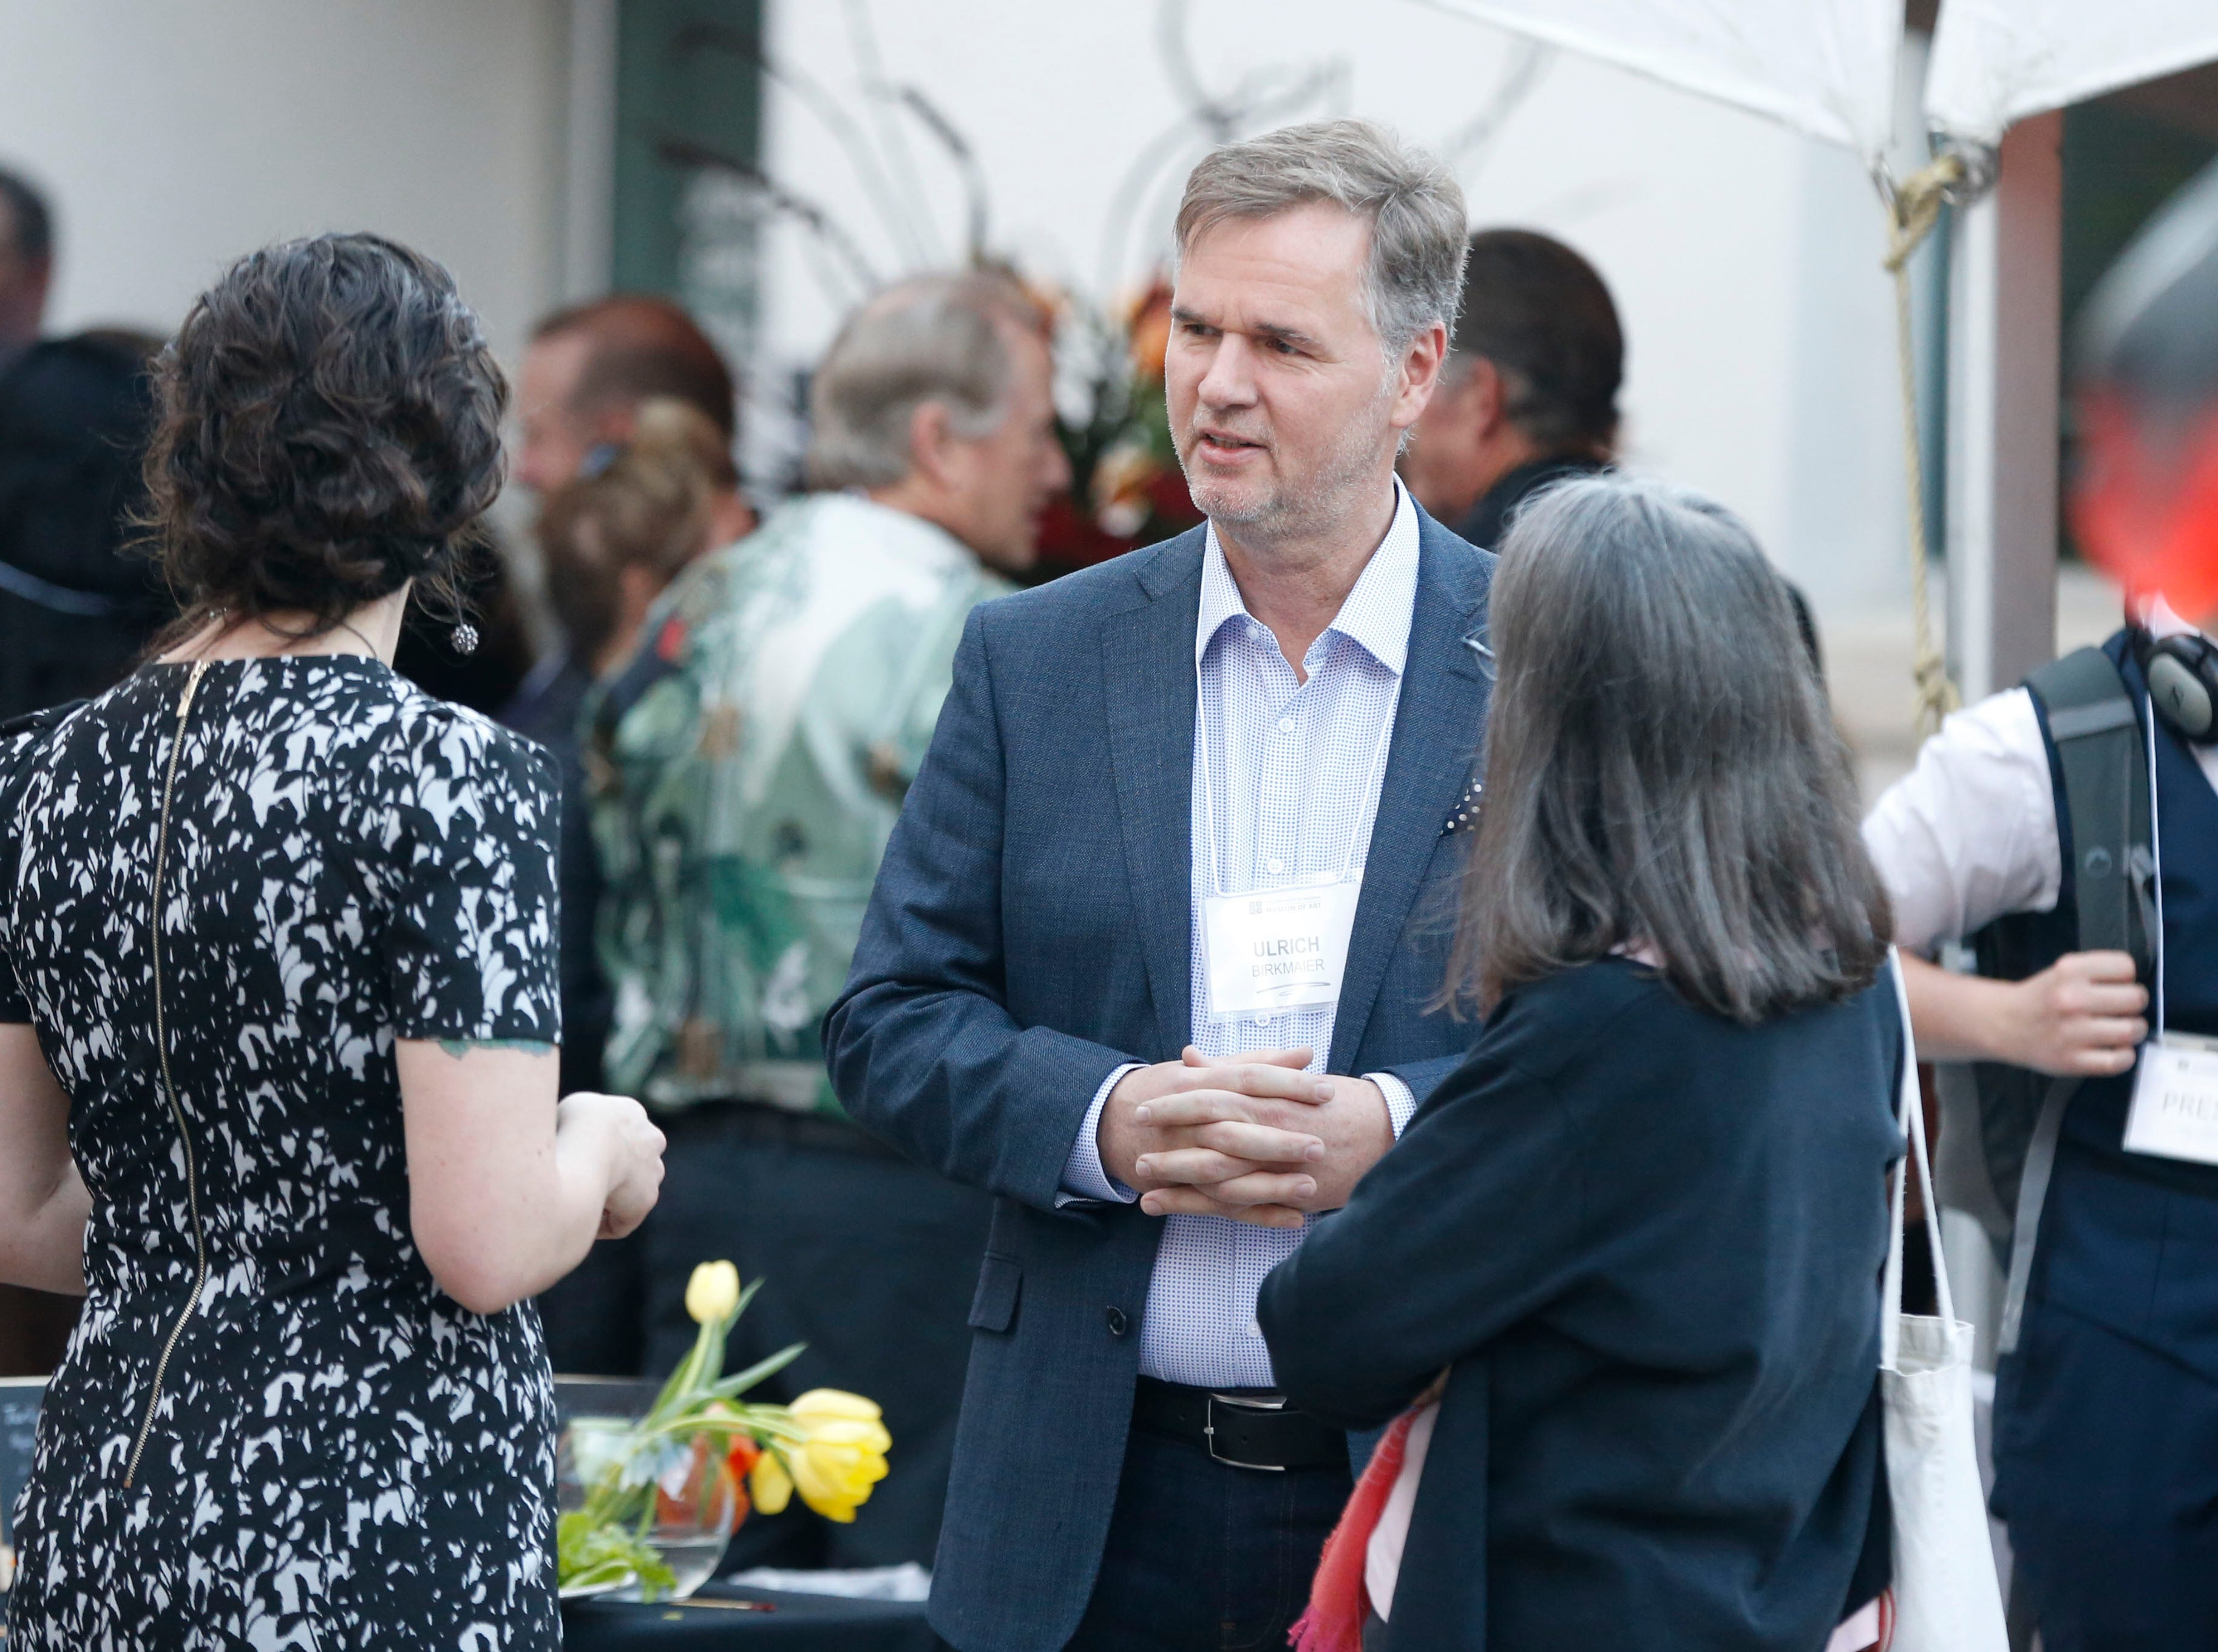 """Getty Museum's Ulrich Birkmaier talks with people at the University of Arizona Museum of Art in Tucson on March 17, 2019. Birkmaier will work on restoring the Willem de Kooning's """"Woman-Ochre,"""" a painting stolen in 1985 from the college."""